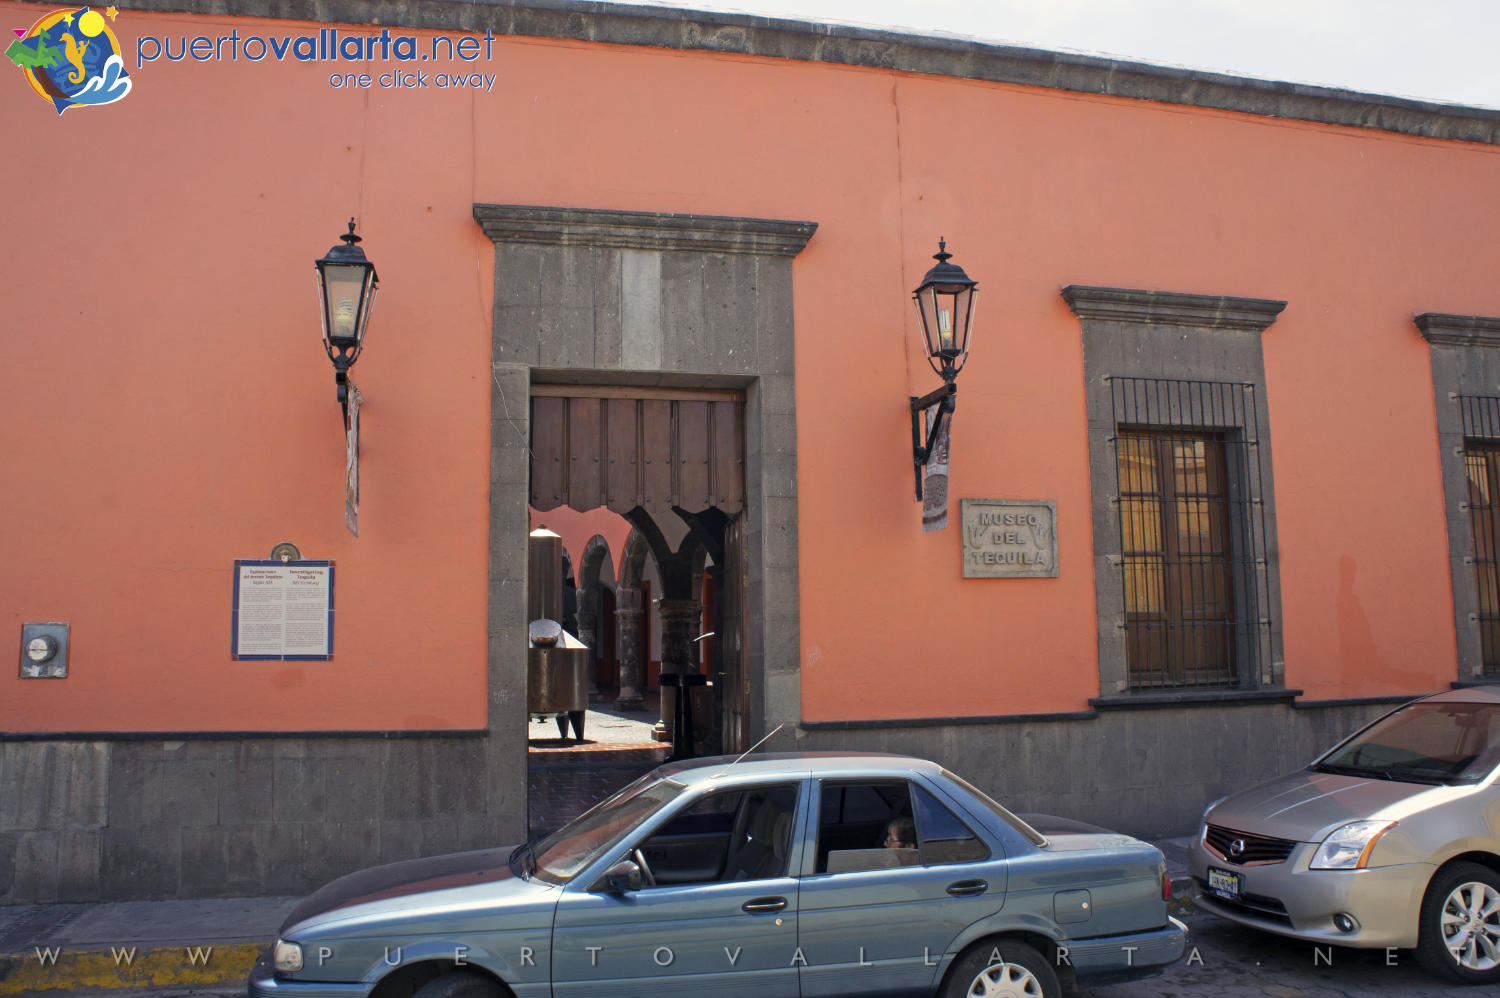 Tequila Museum (Museo del Tequila)